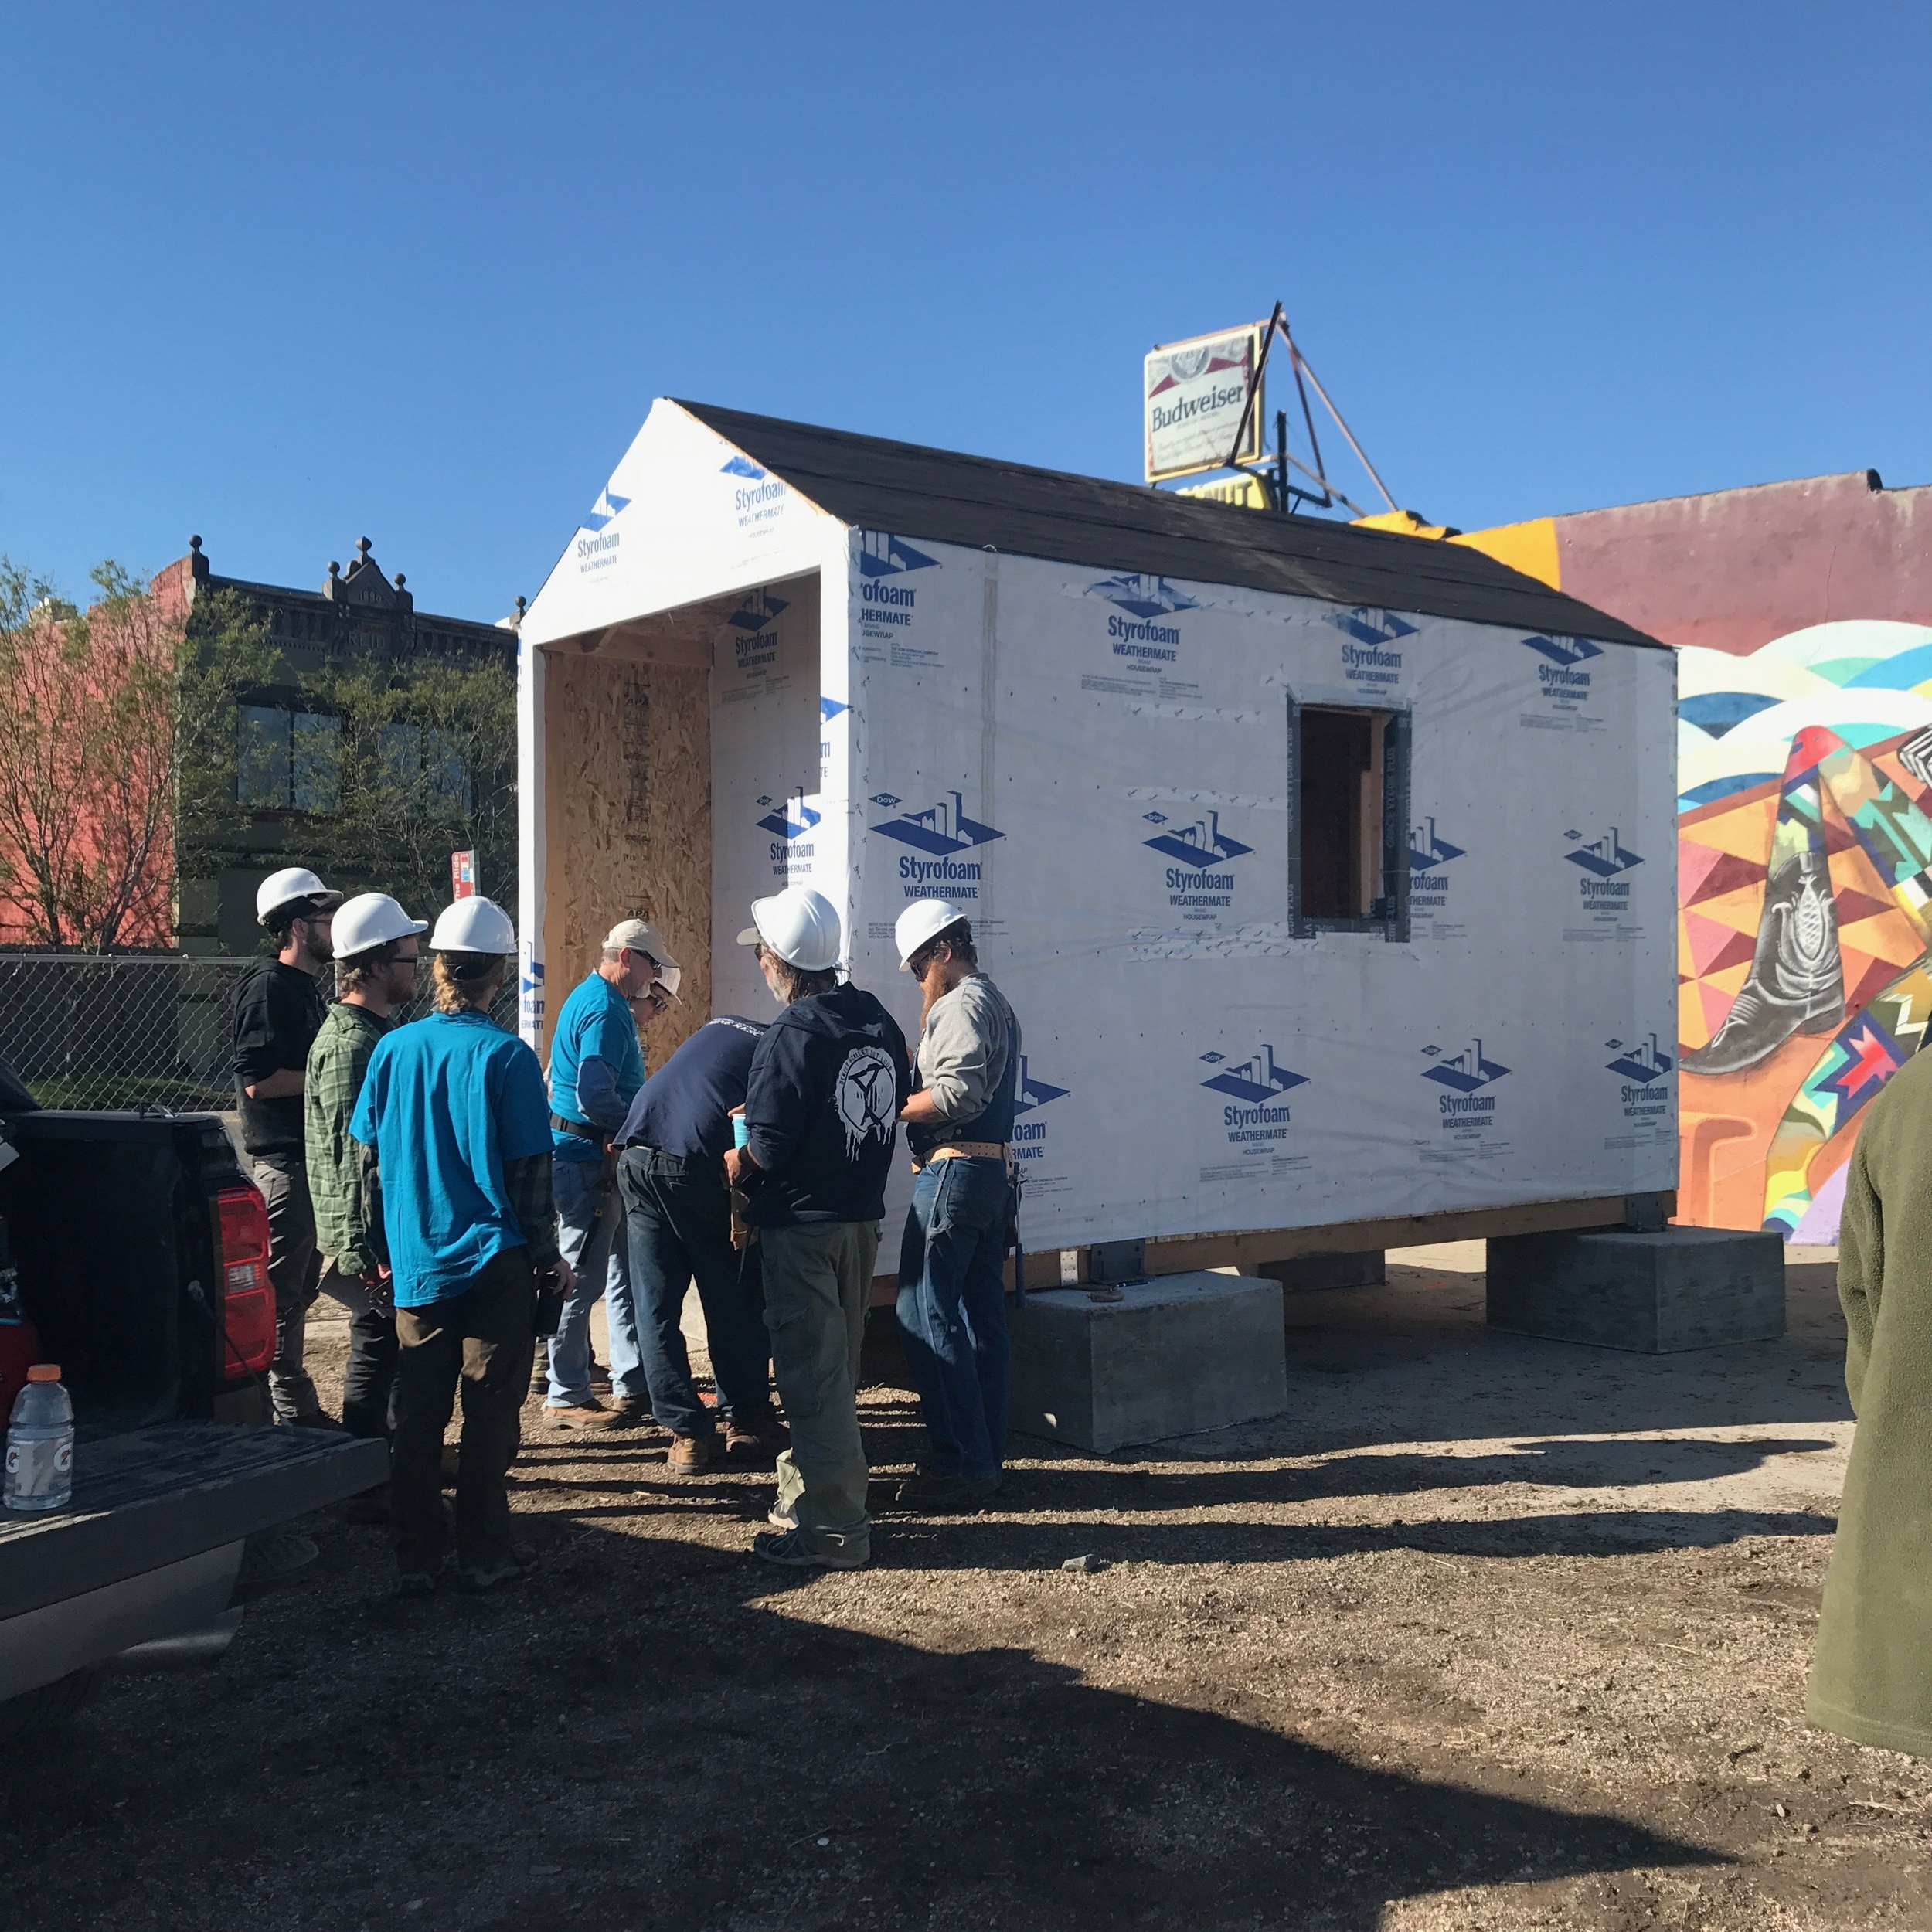 Tiny HomeVillages - In 2017, we co-founded Colorado Village Collaborative alongside advocacy partners to rapidly and affordably develop self-governed communities with and for people coming out of homelessness. We're making good on our beliefs that housing is a human right, that everyone should be treated like a human being, and everyone should have a safe place to thrive.